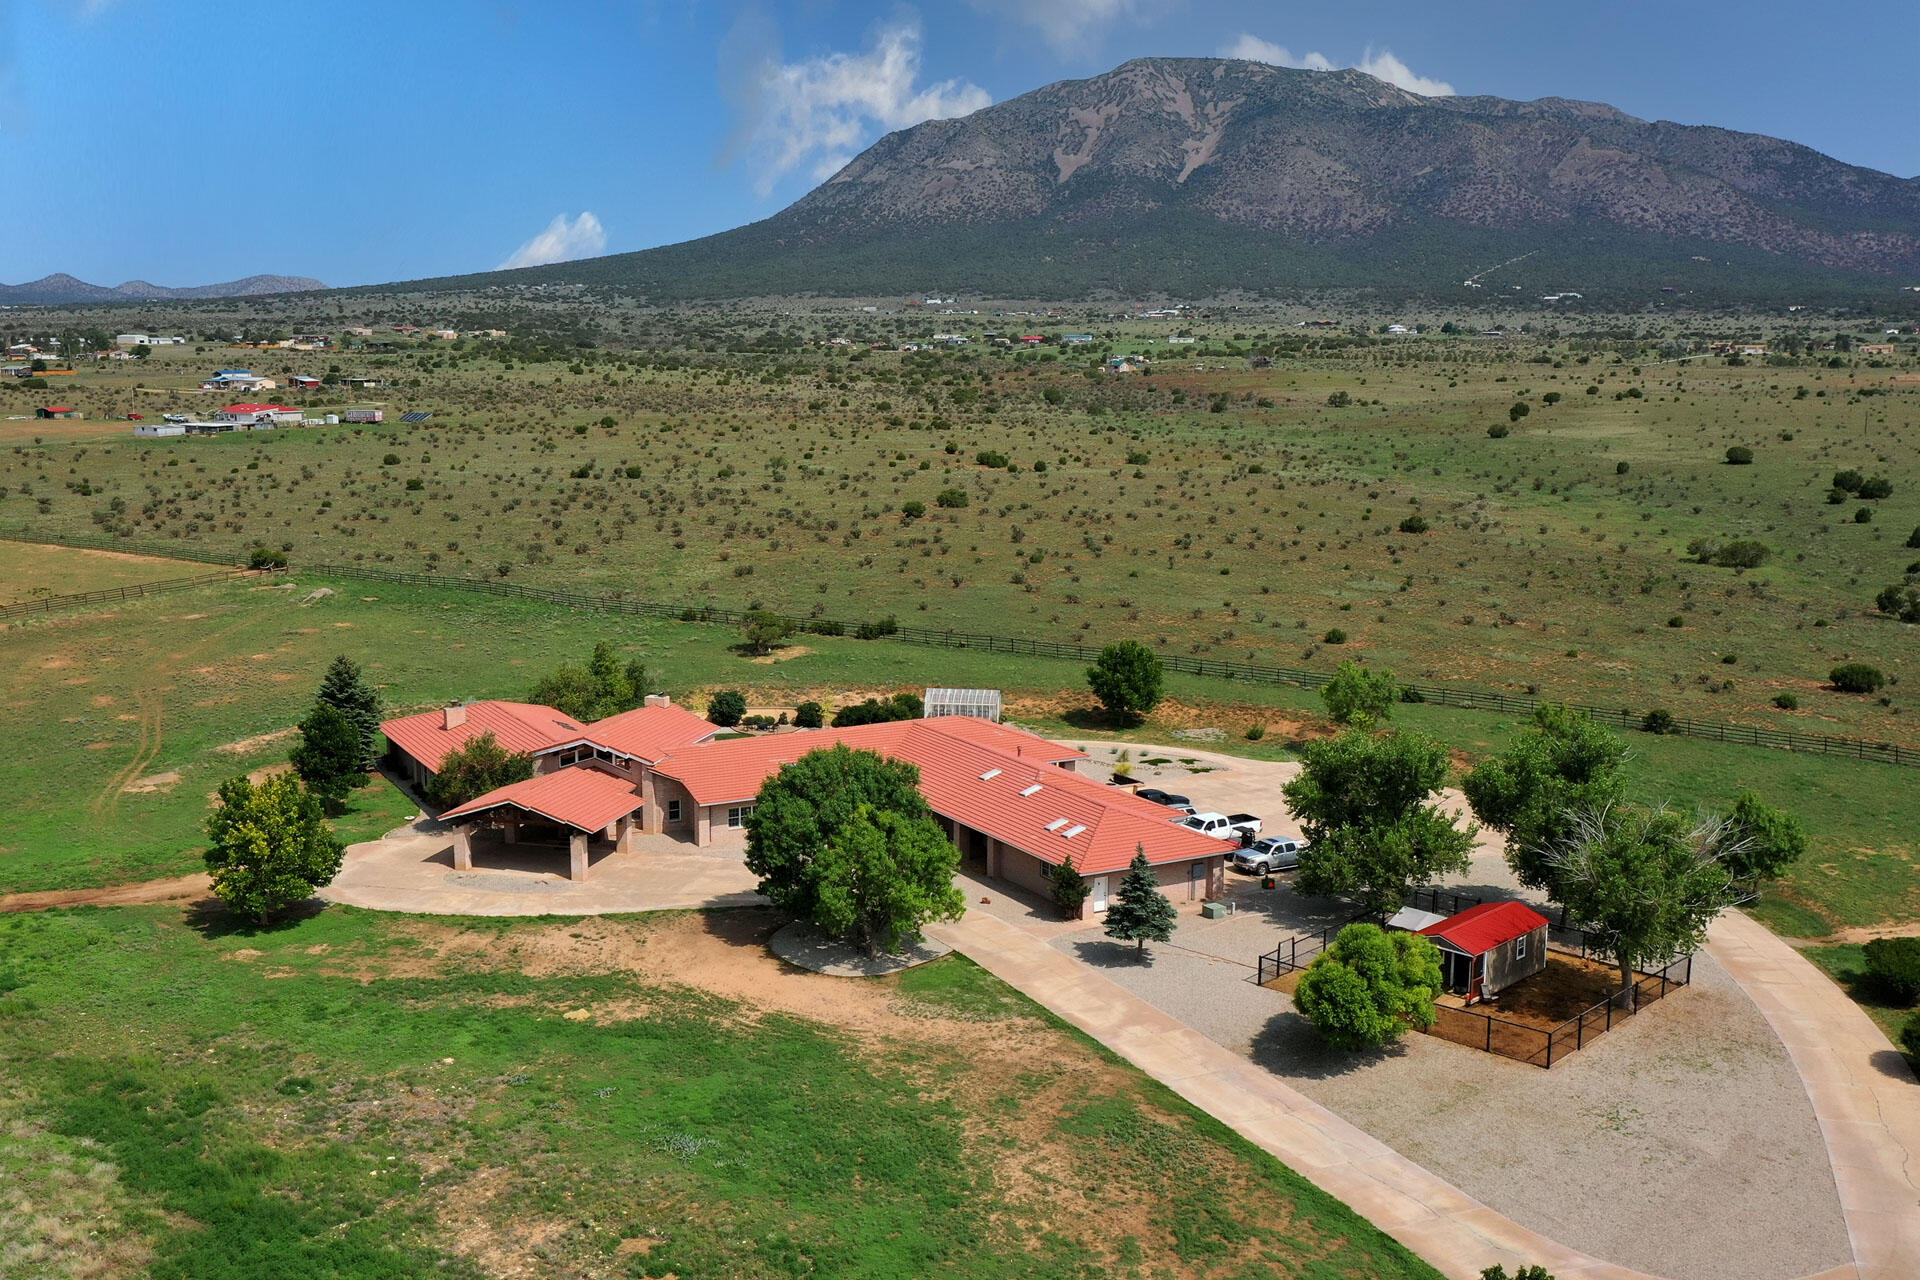 Where the mountains meet the plains. Hacienda de Caballo is a luxury equestrian estate ideal for the horse hobbyist or professional seeking a new ranch for their equestrian operations. A grand main hacienda with a spacious owner's ensuite plus 4 guest ensuites enjoys endless views and fine living. Two 2 bed/1 bath guest casitas are ideal for guests, staff, trainers or rental income. All 79.7 acres are fenced and cross fenced. Main barn has 4 large stalls plus tack, storage, vet stock & office/lounge. Lower & West barn offer more stalls & storage. Two pasture run-ins, too. Plus hay barn, shop, RV/Tractor garages, irrigation well with 10 ac/ft water rights & 3k water tank. EZ access to ABQ or Santa Fe plus close to I-40 for interstate travel. Breeches or chaps, you'll love it here!